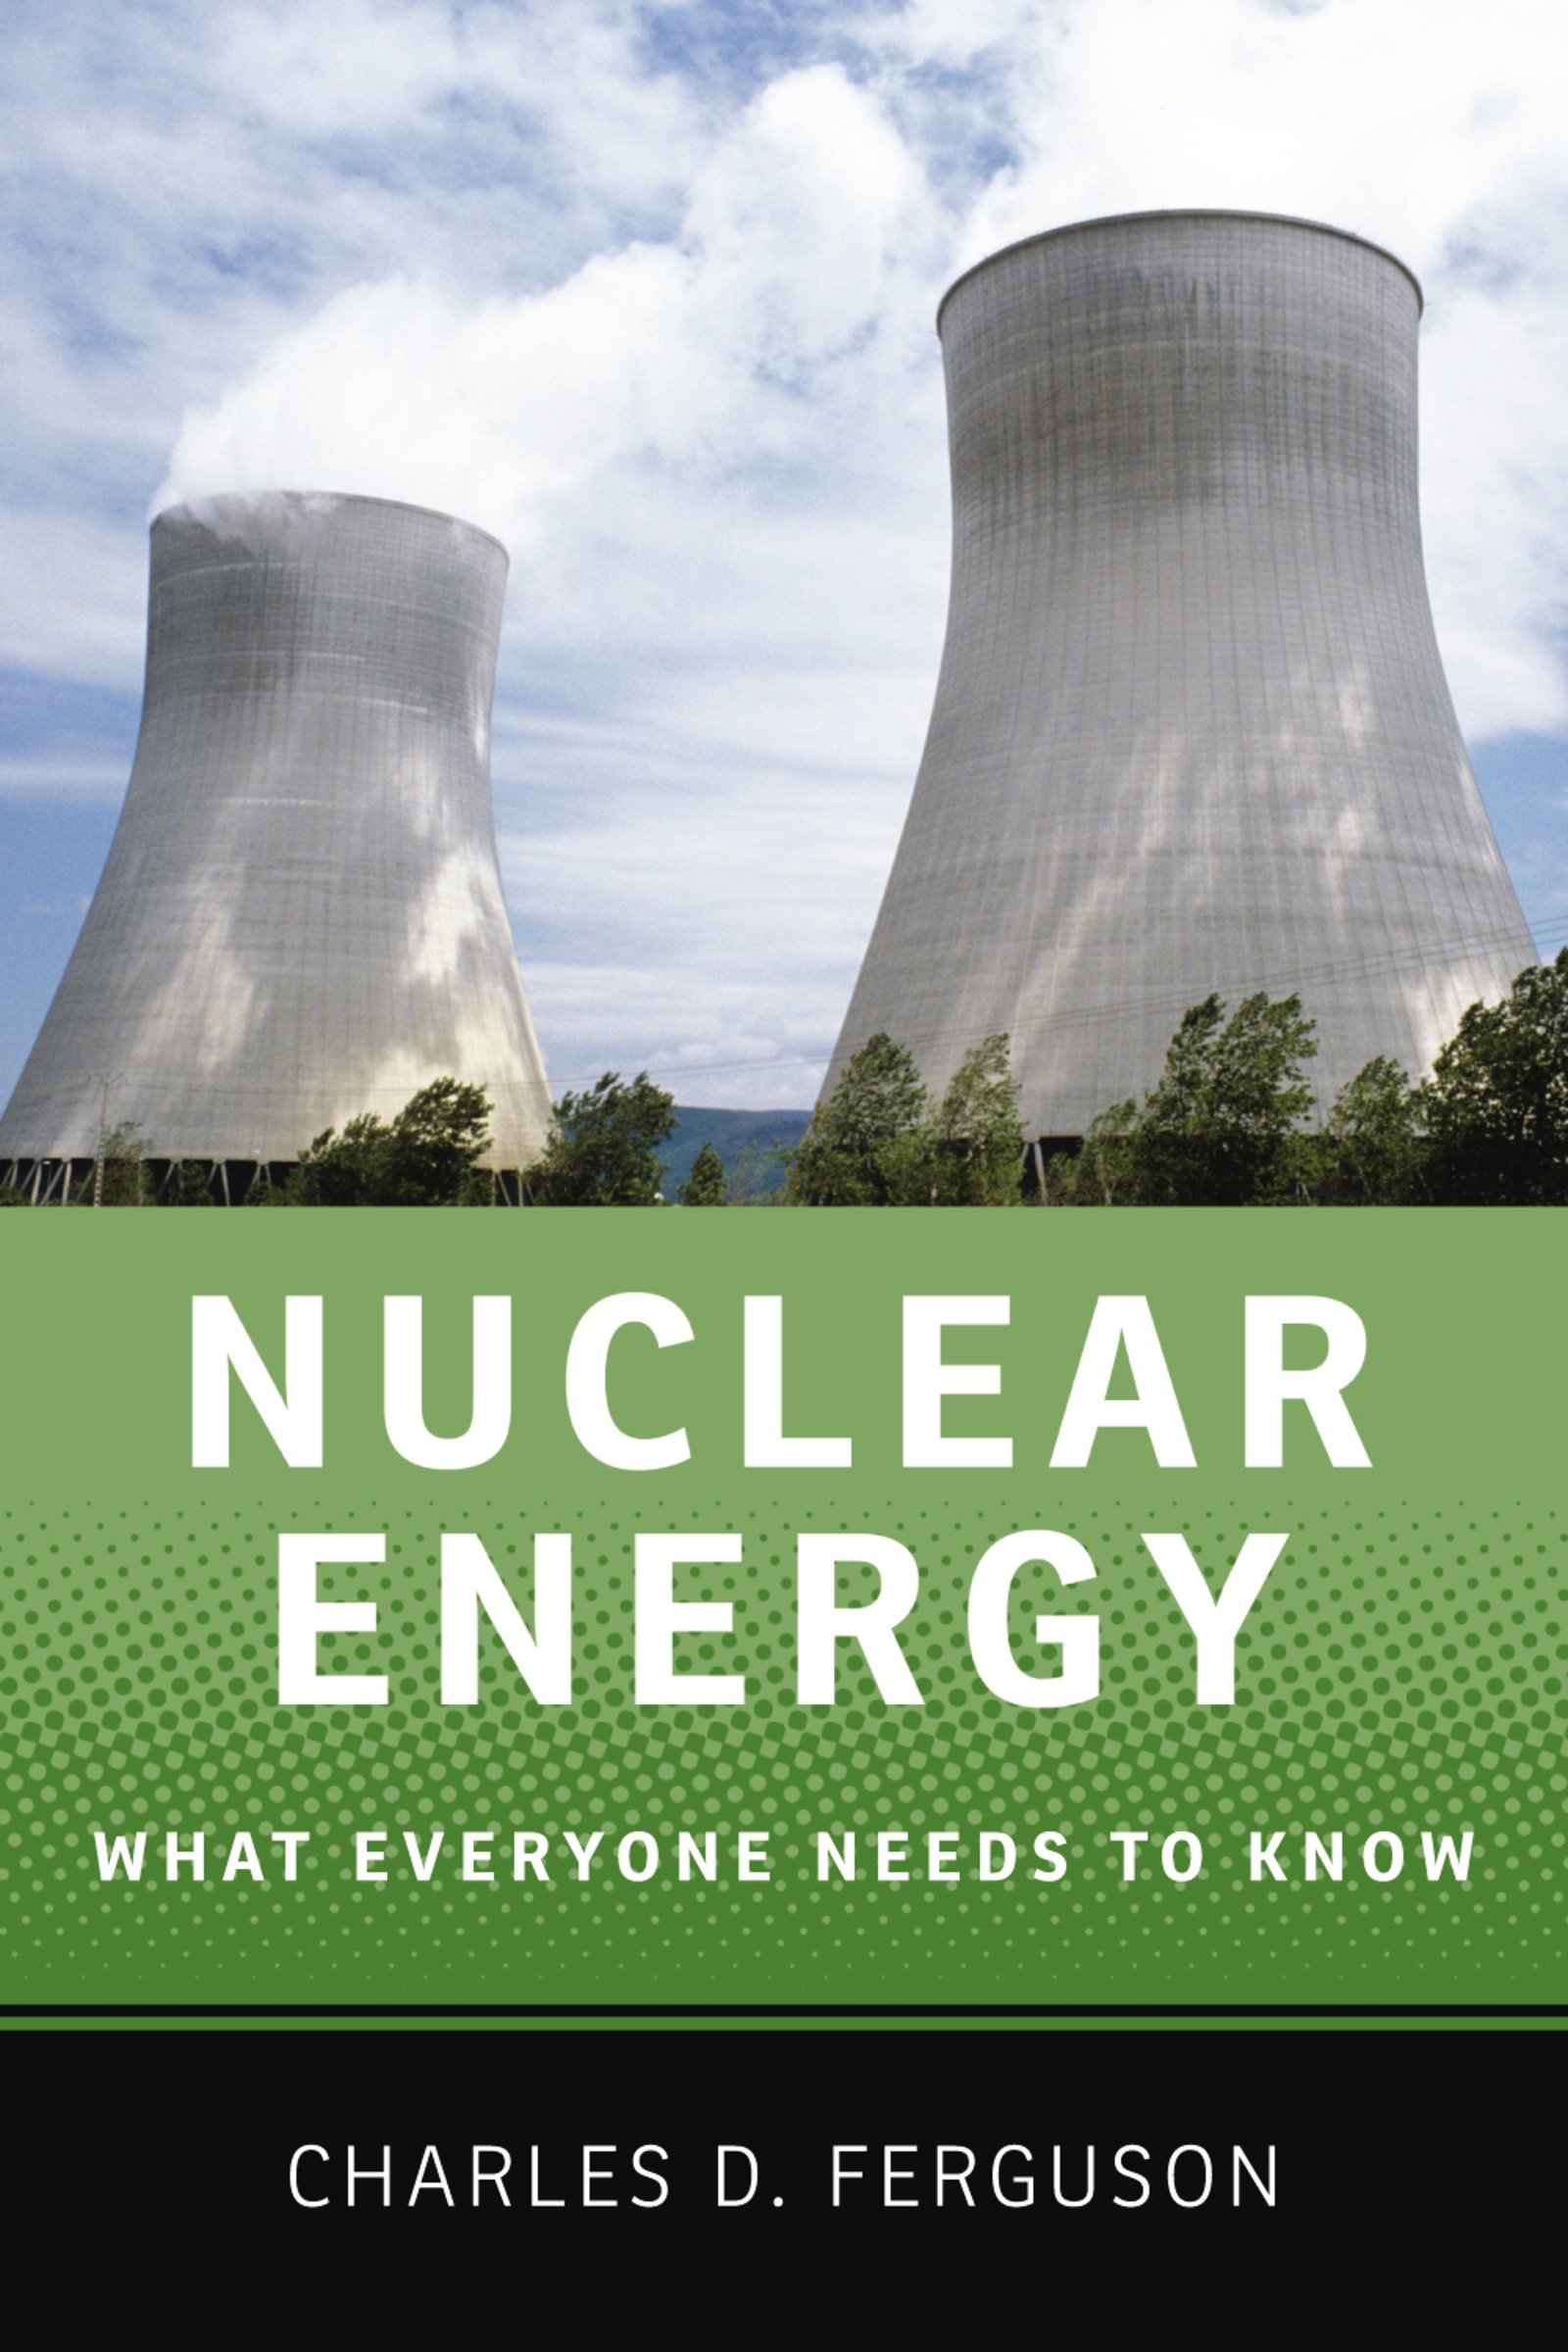 Download Ebook Nuclear Energy by Charles D. Ferguson Pdf